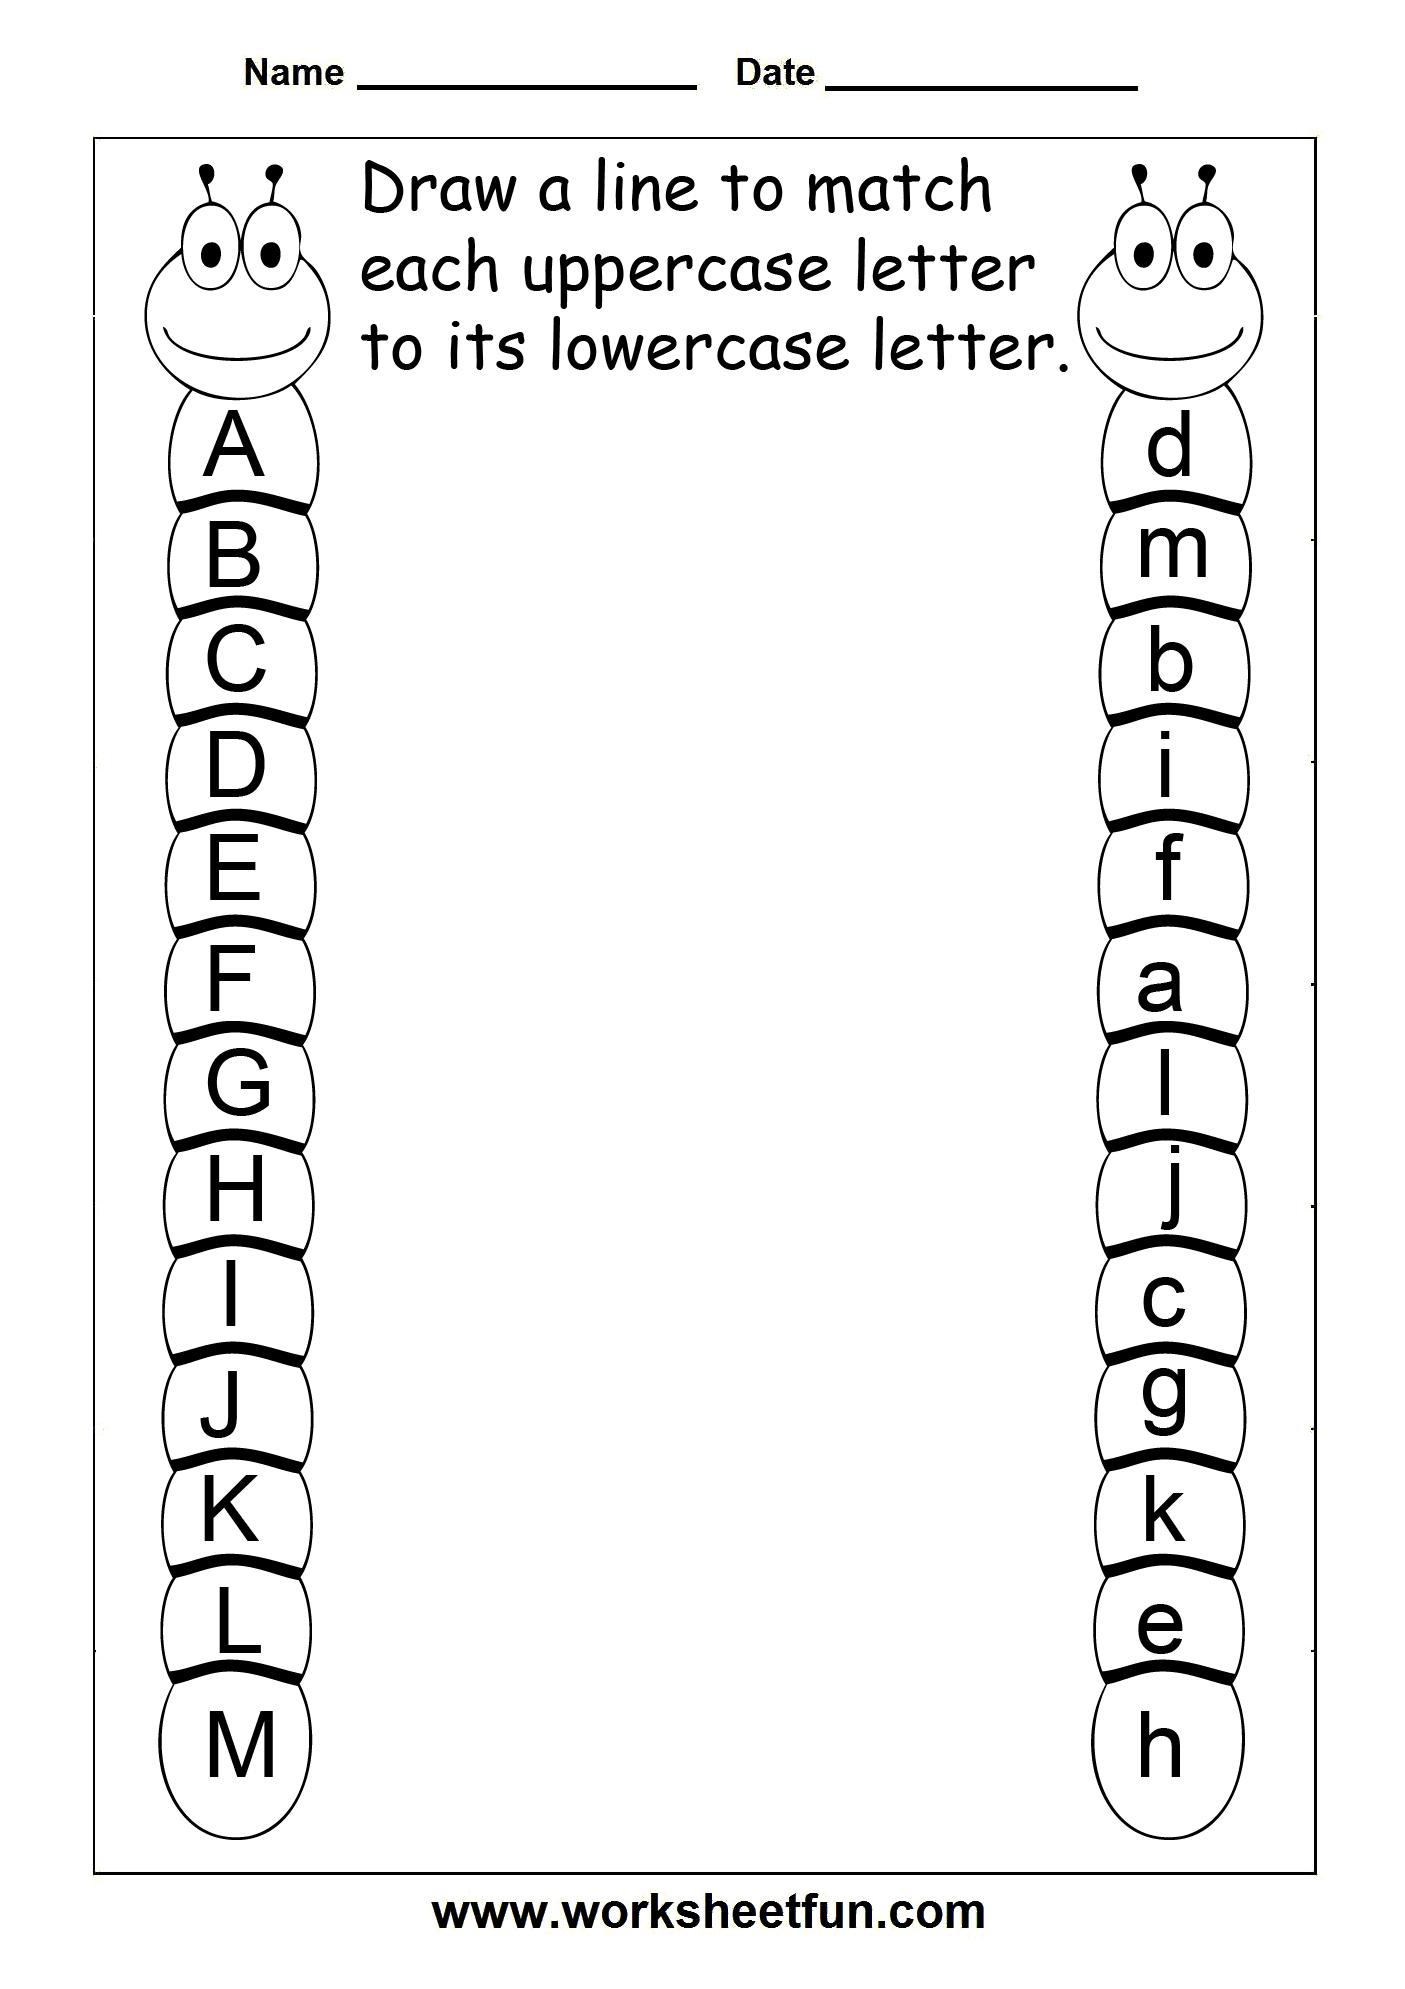 Weirdmailus  Fascinating  Images About Work Worksheet On Pinterest  Hidden Pictures  With Marvelous  Images About Work Worksheet On Pinterest  Hidden Pictures Color By Numbers And Puzzles With Extraordinary Word Relationship Worksheets Also Dipthong Worksheets In Addition Letter Search Worksheet And Number Operations Worksheets As Well As Balance Scale Worksheet Additionally Reading Directions Worksheet From Pinterestcom With Weirdmailus  Marvelous  Images About Work Worksheet On Pinterest  Hidden Pictures  With Extraordinary  Images About Work Worksheet On Pinterest  Hidden Pictures Color By Numbers And Puzzles And Fascinating Word Relationship Worksheets Also Dipthong Worksheets In Addition Letter Search Worksheet From Pinterestcom